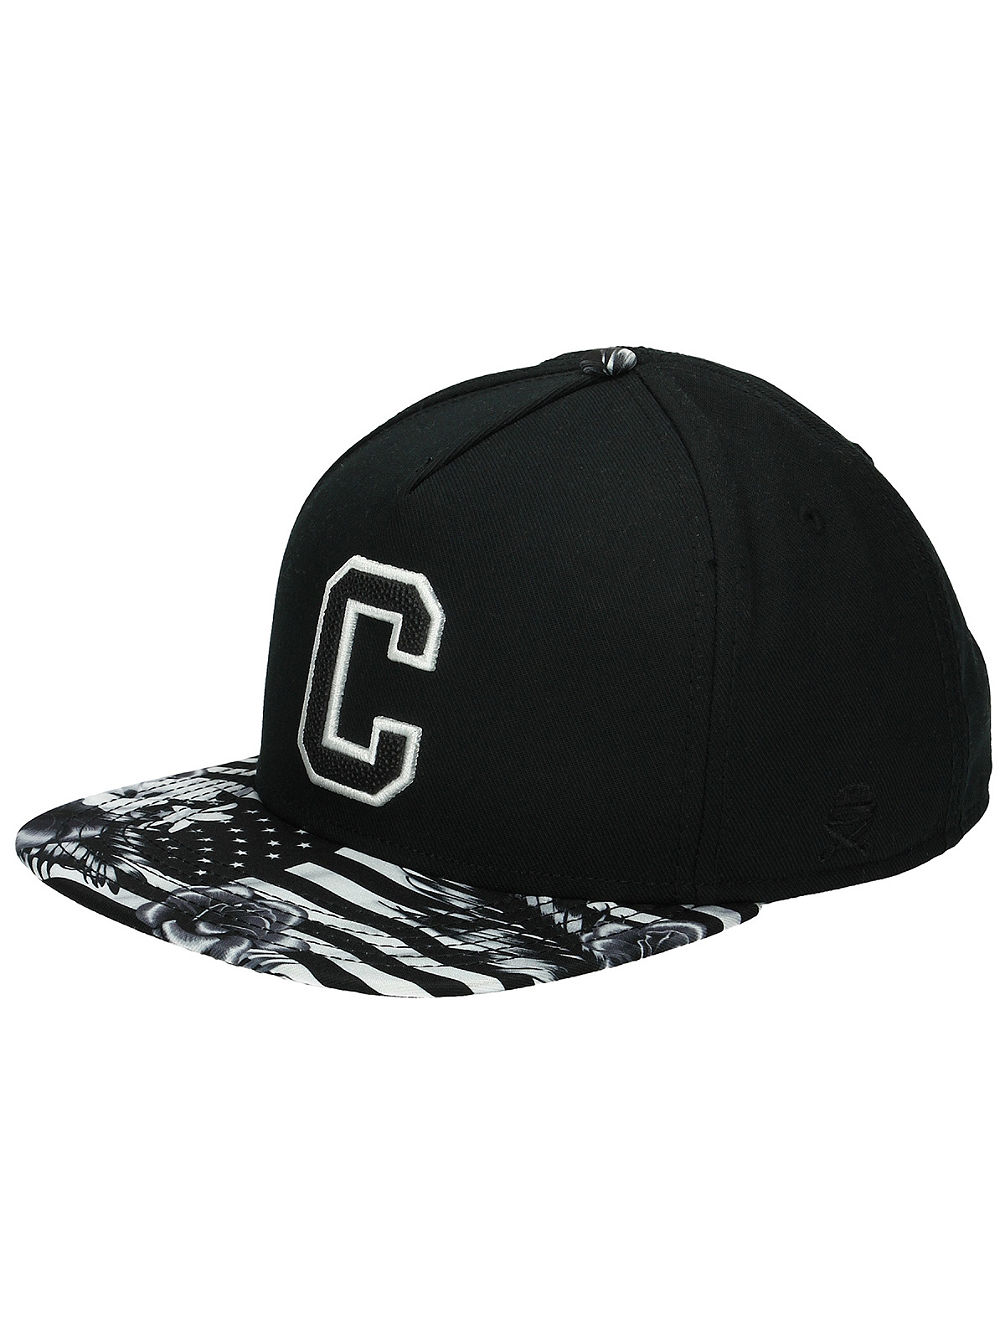 cayler-sons-gld-cee-flagged-cap